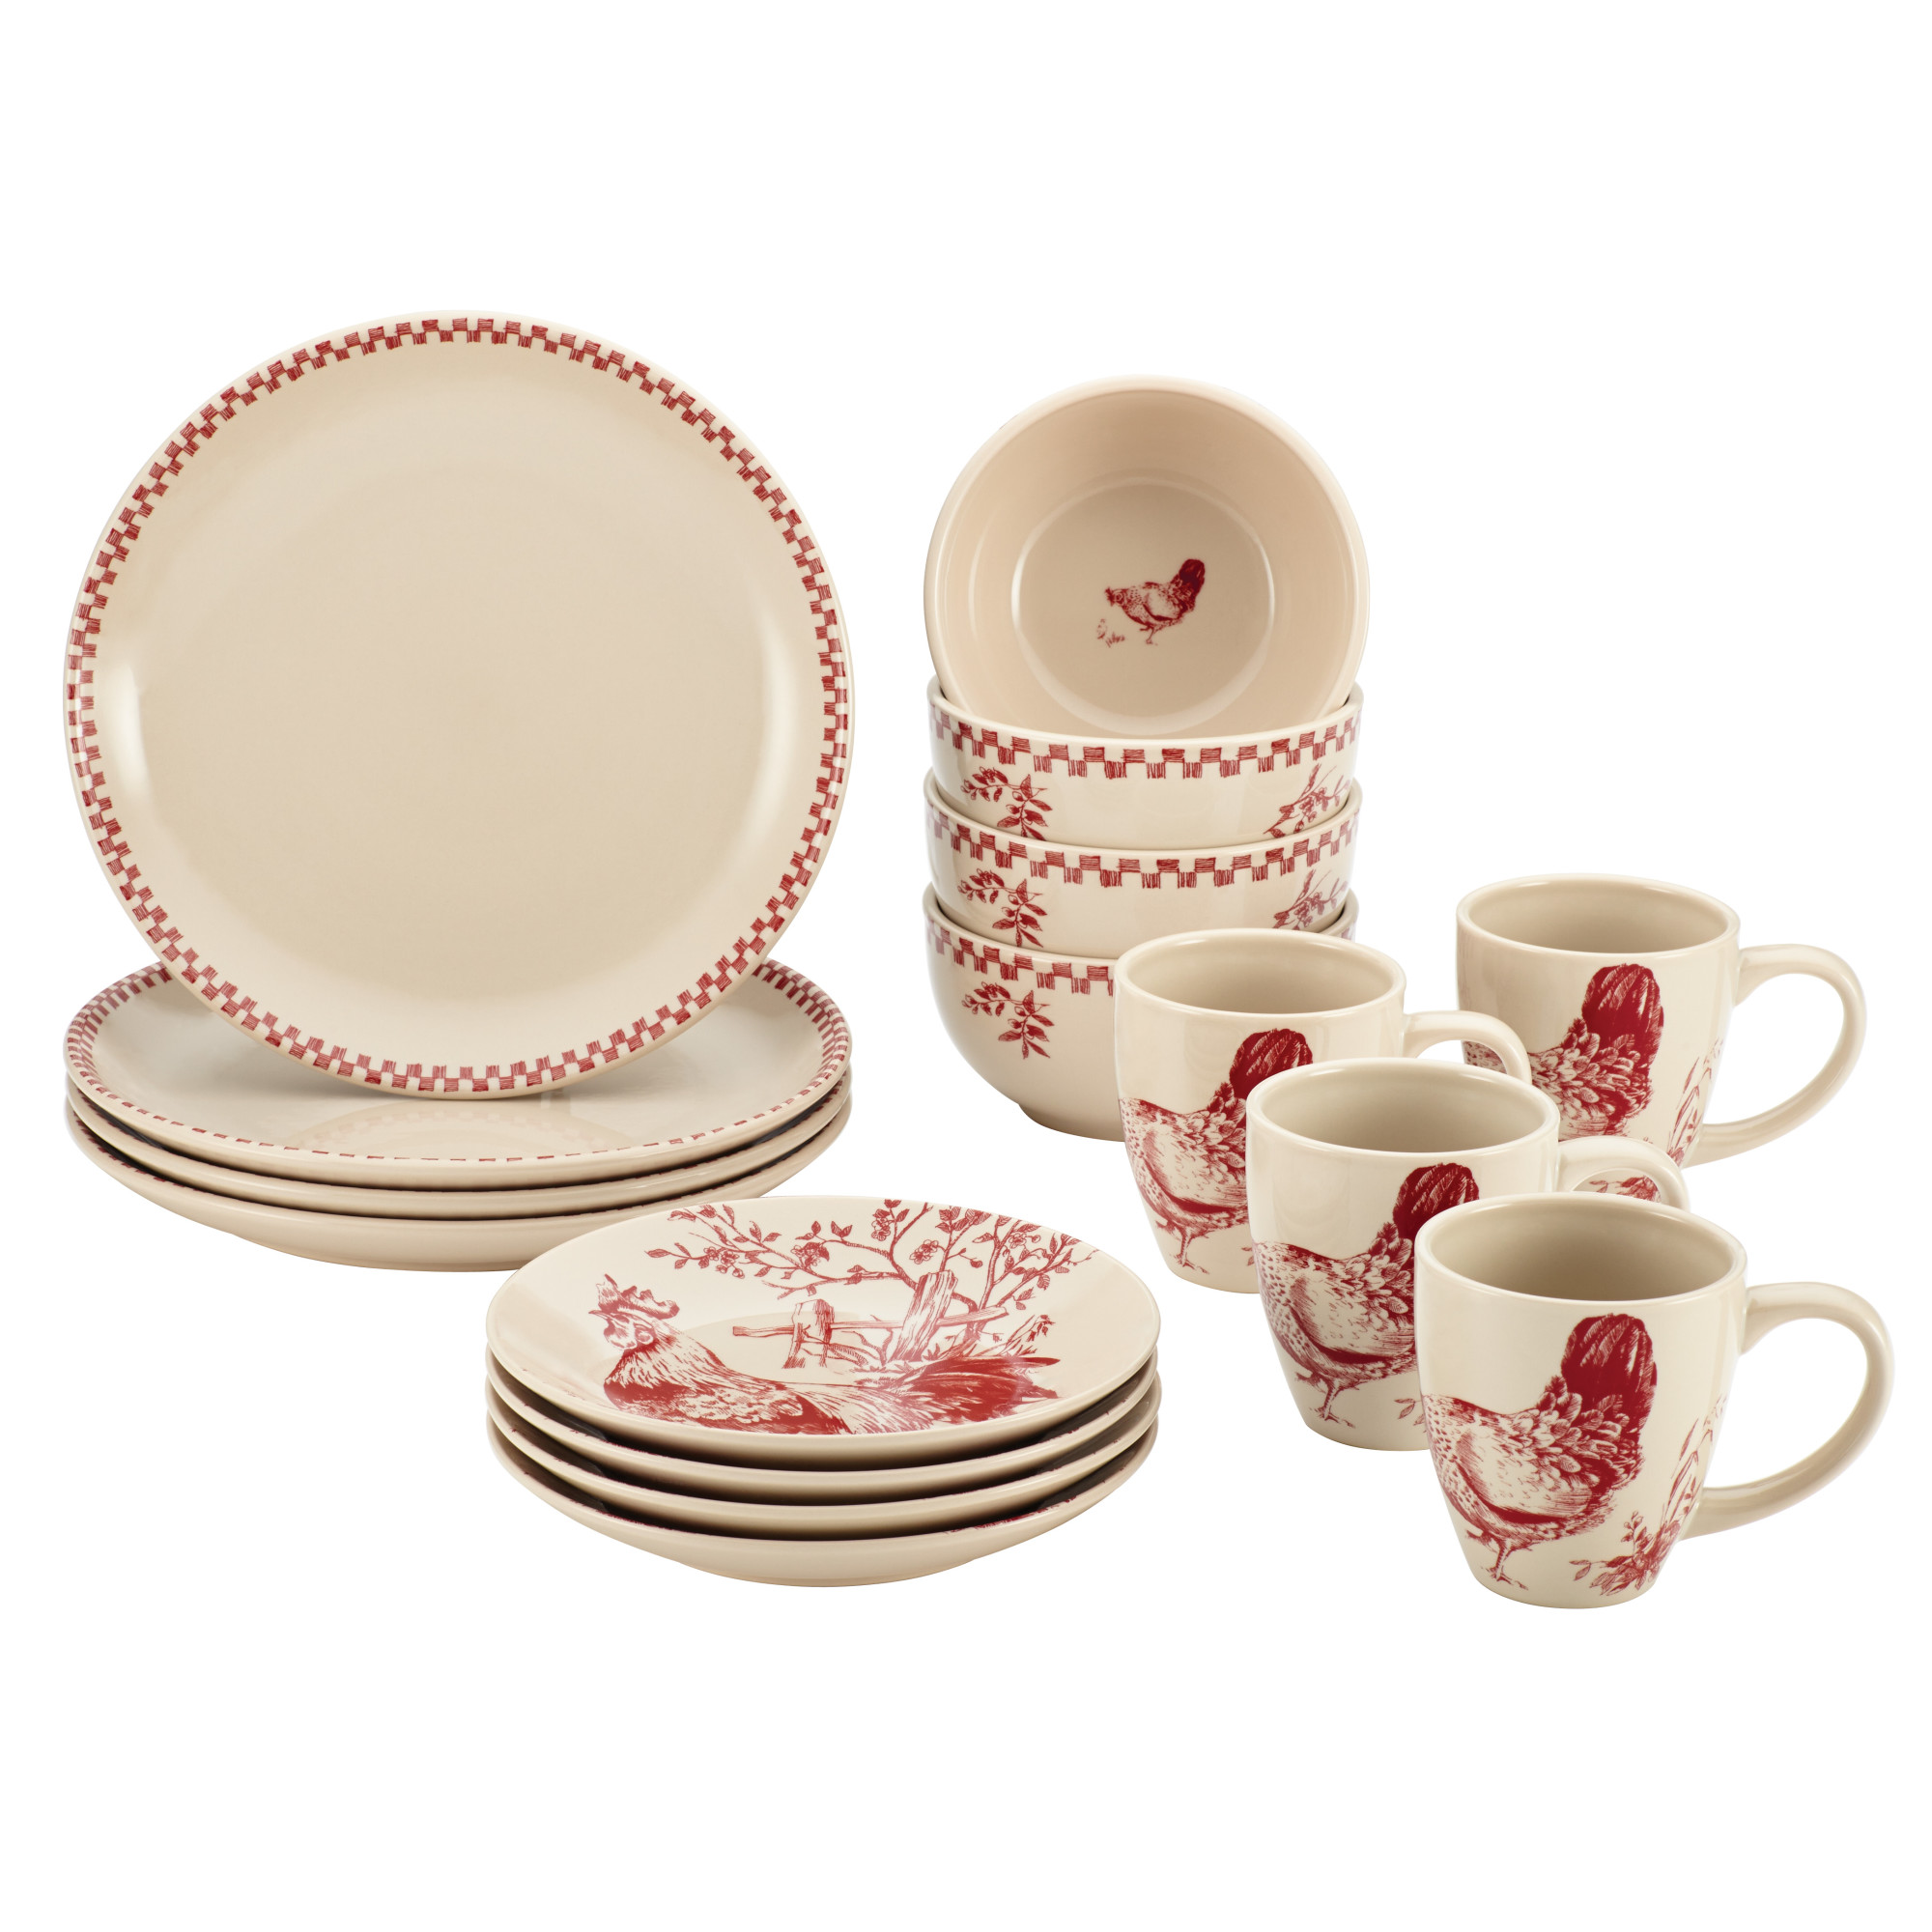 Pottery Dinnerware Sets | Stoneware Dinnerware Sets | Jcpenney Plates